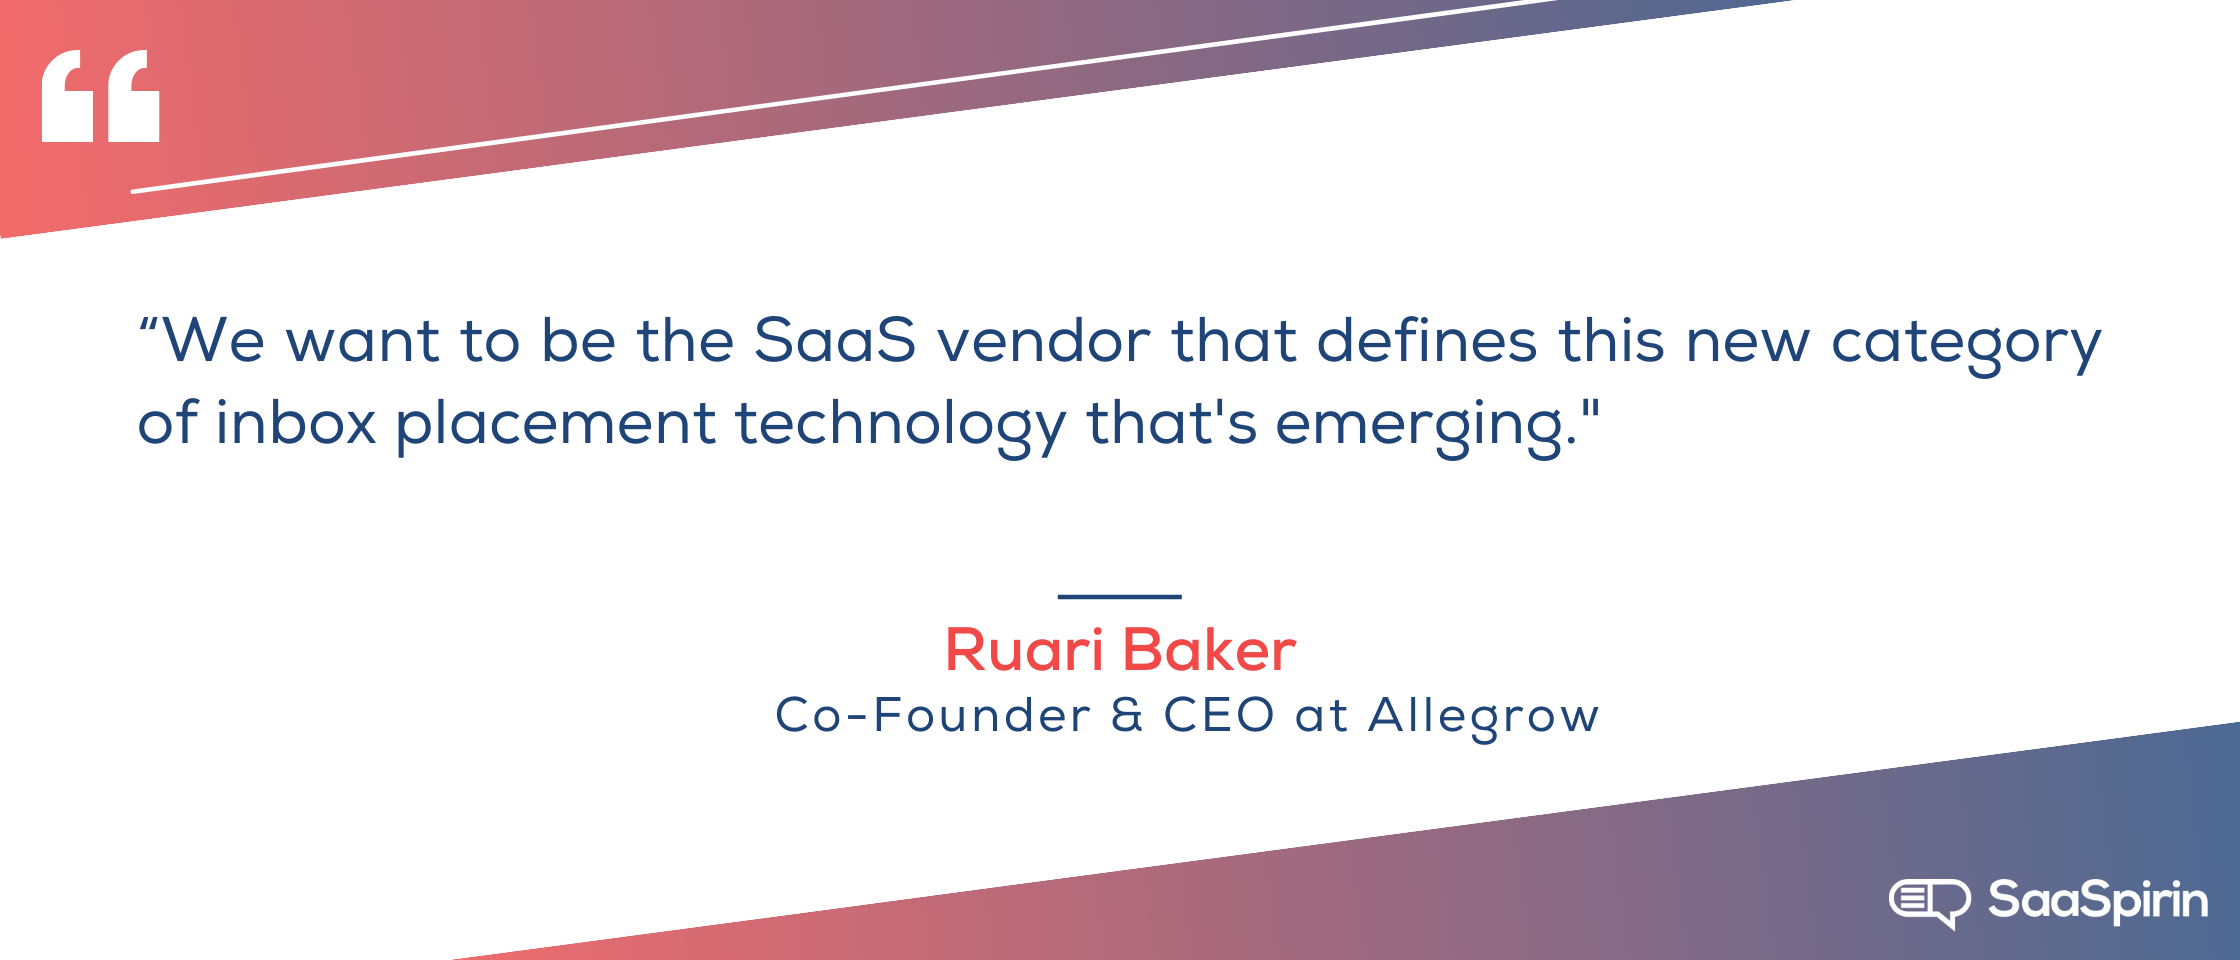 We-want-to-be-the-SaaS-vendor-that-defines-this-new-category-of-inbox-placement-technology-thats-emerging.png